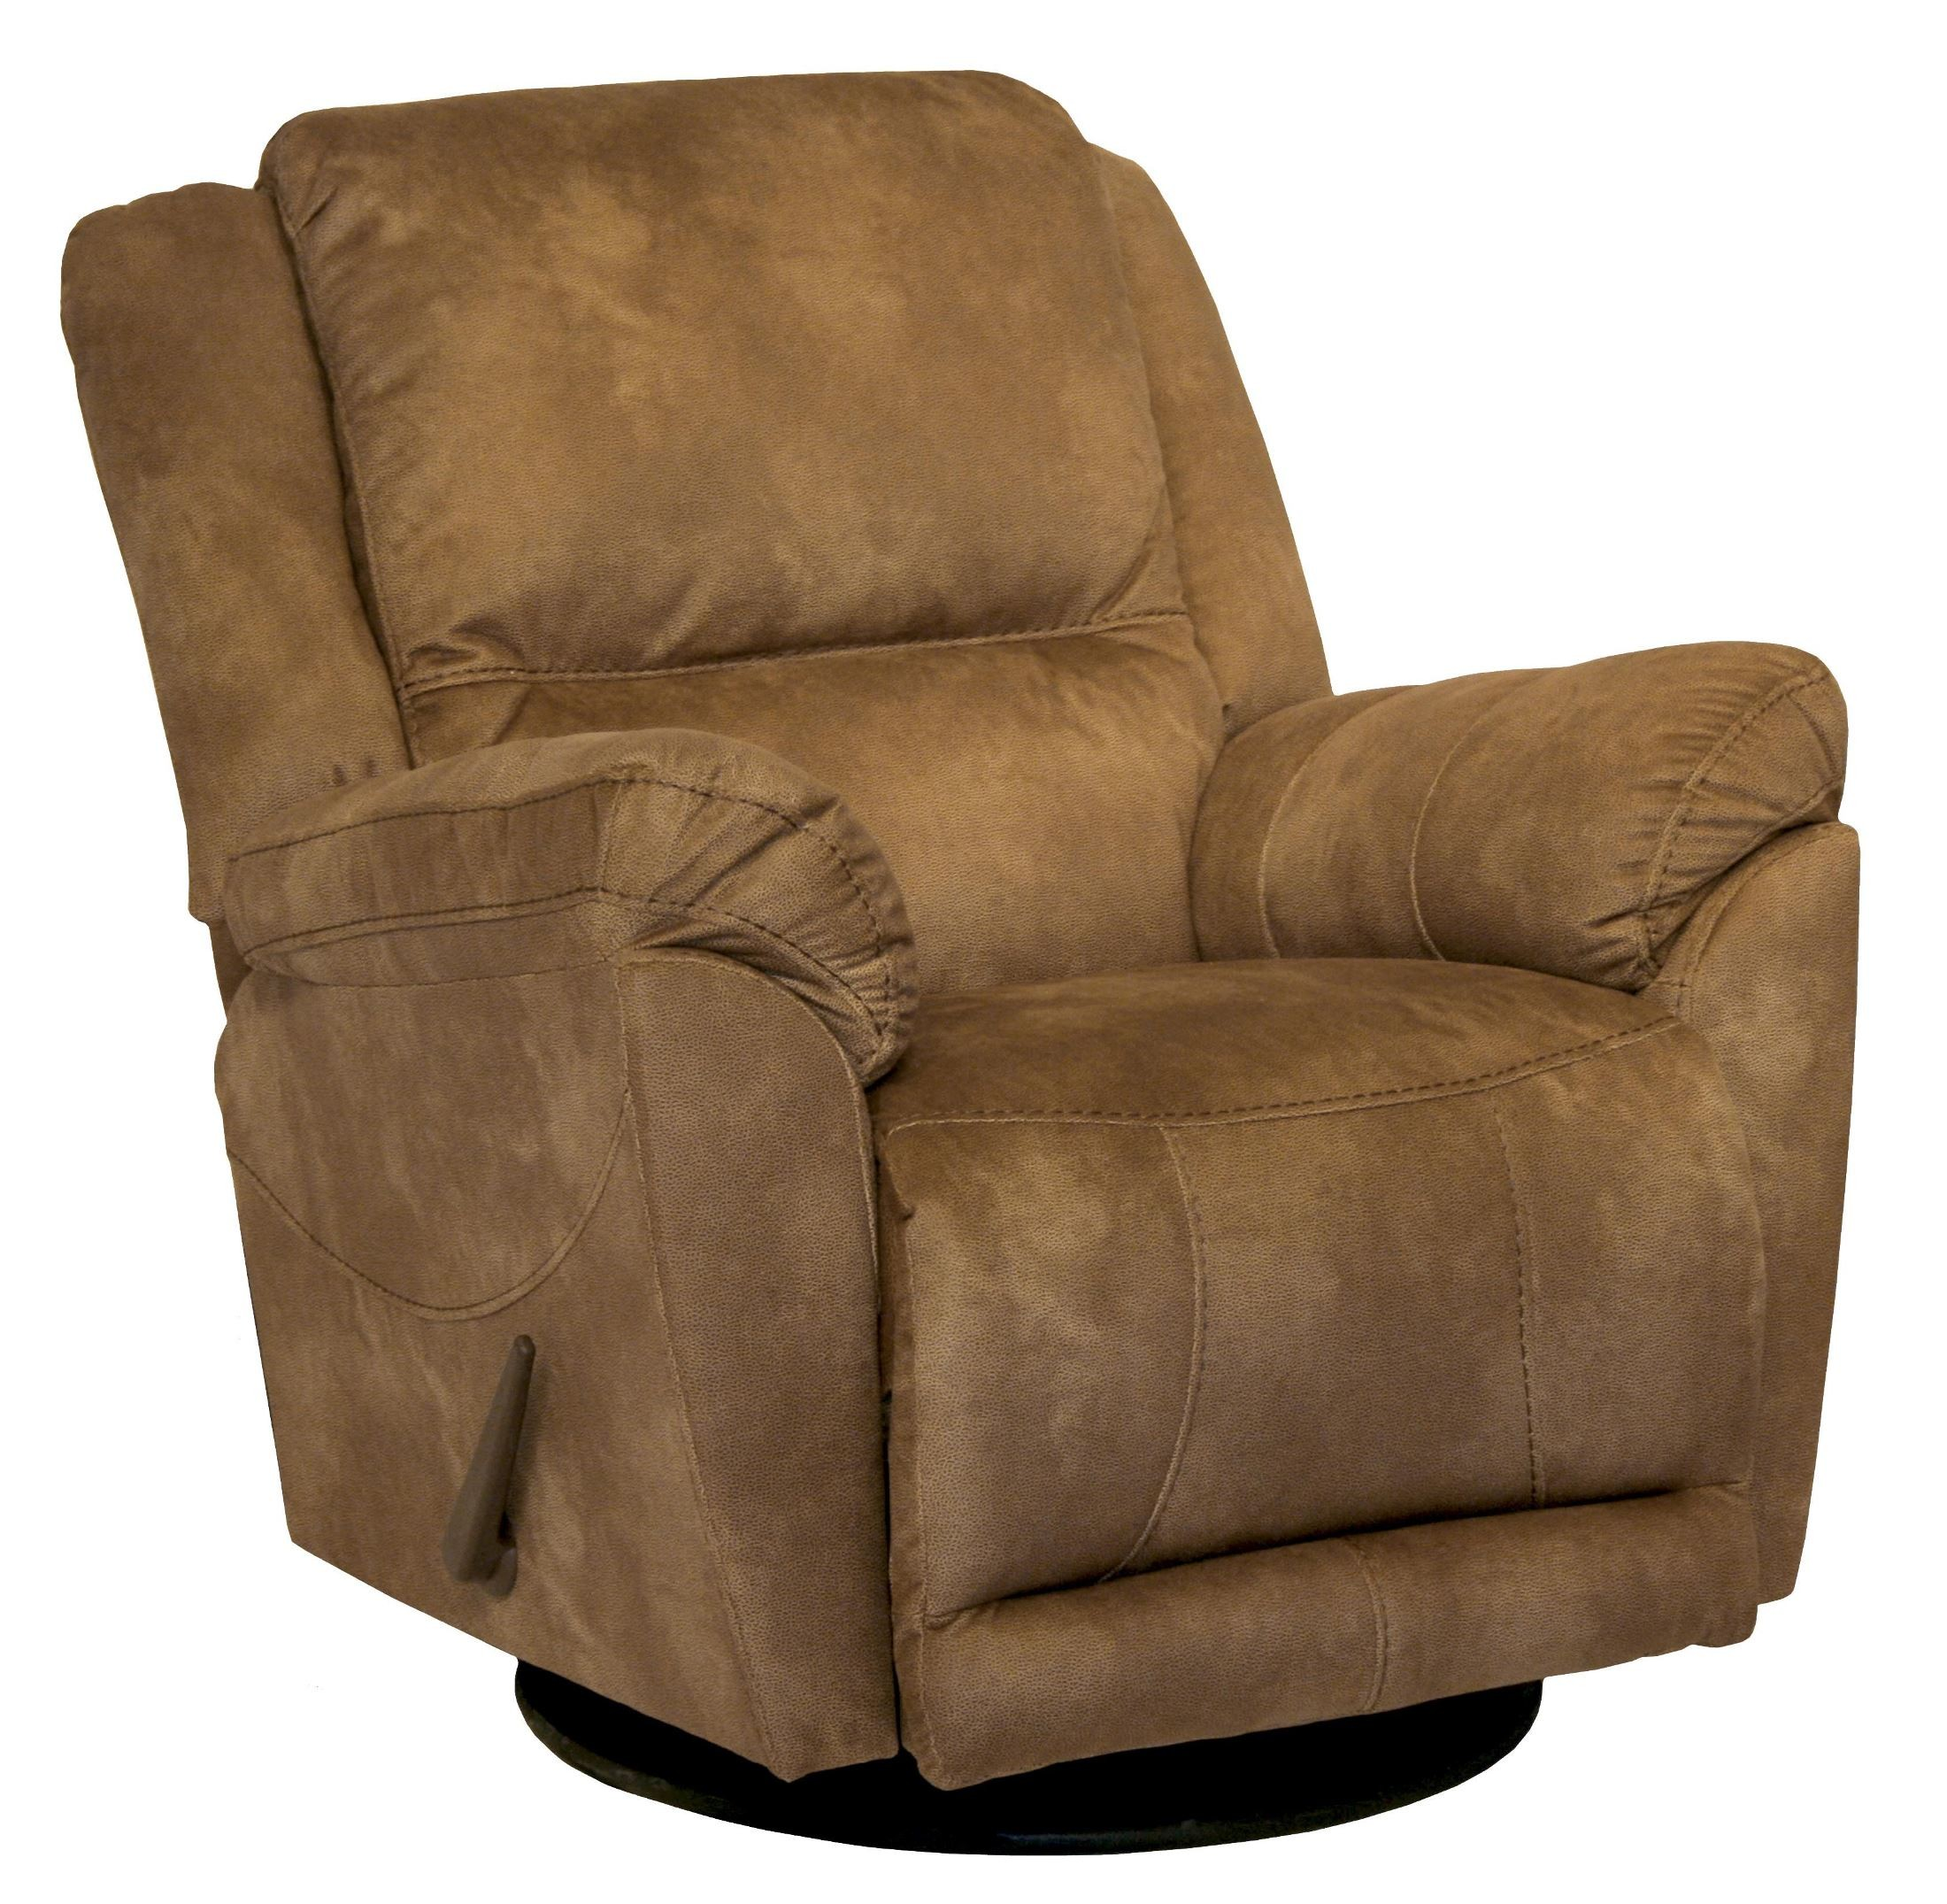 Maverick saddle swivel glider recliner from catnapper for Catnapper maverick chaise swivel glider recliner